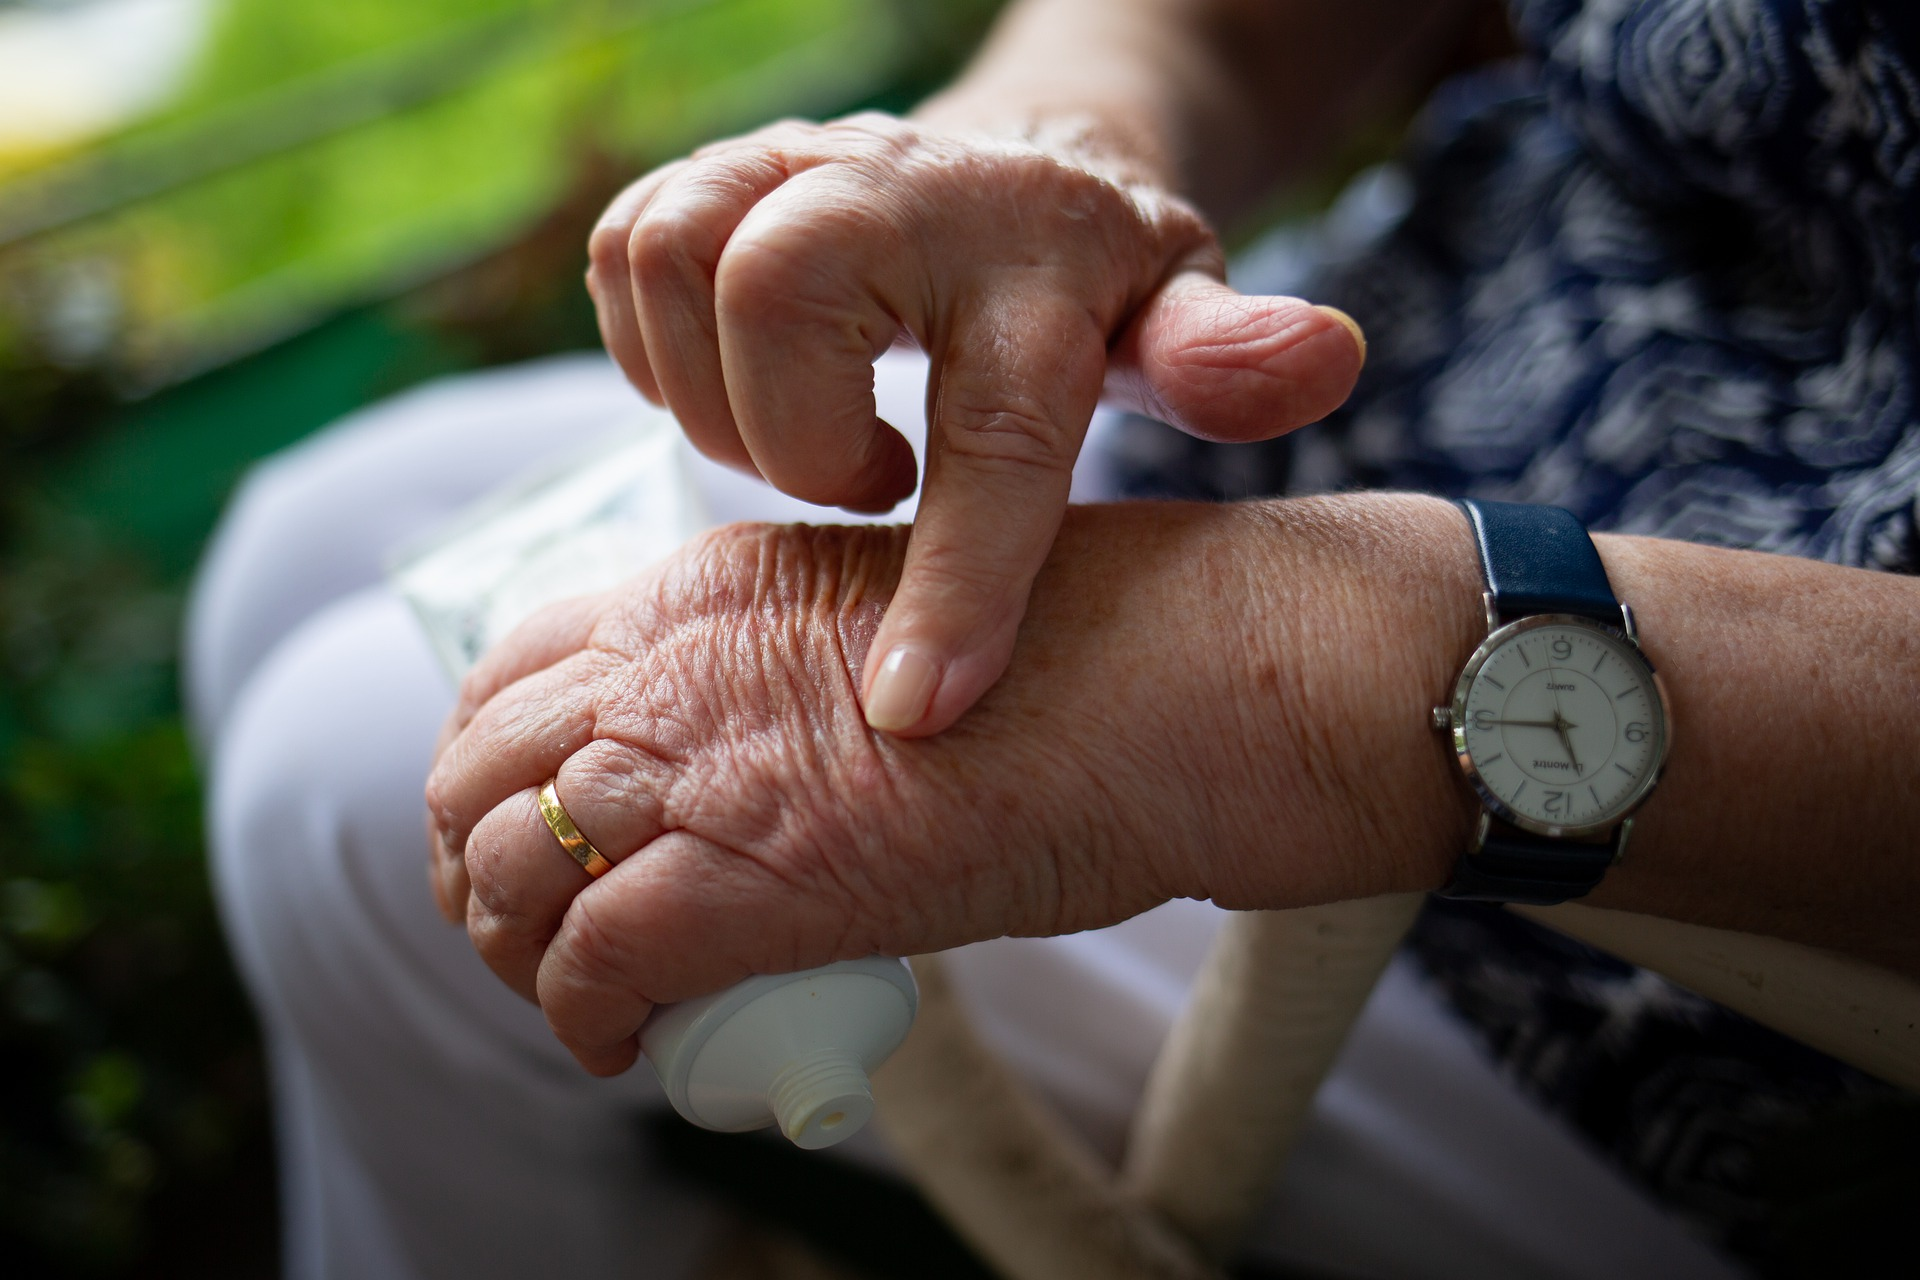 How to Treat Arthritis at Home